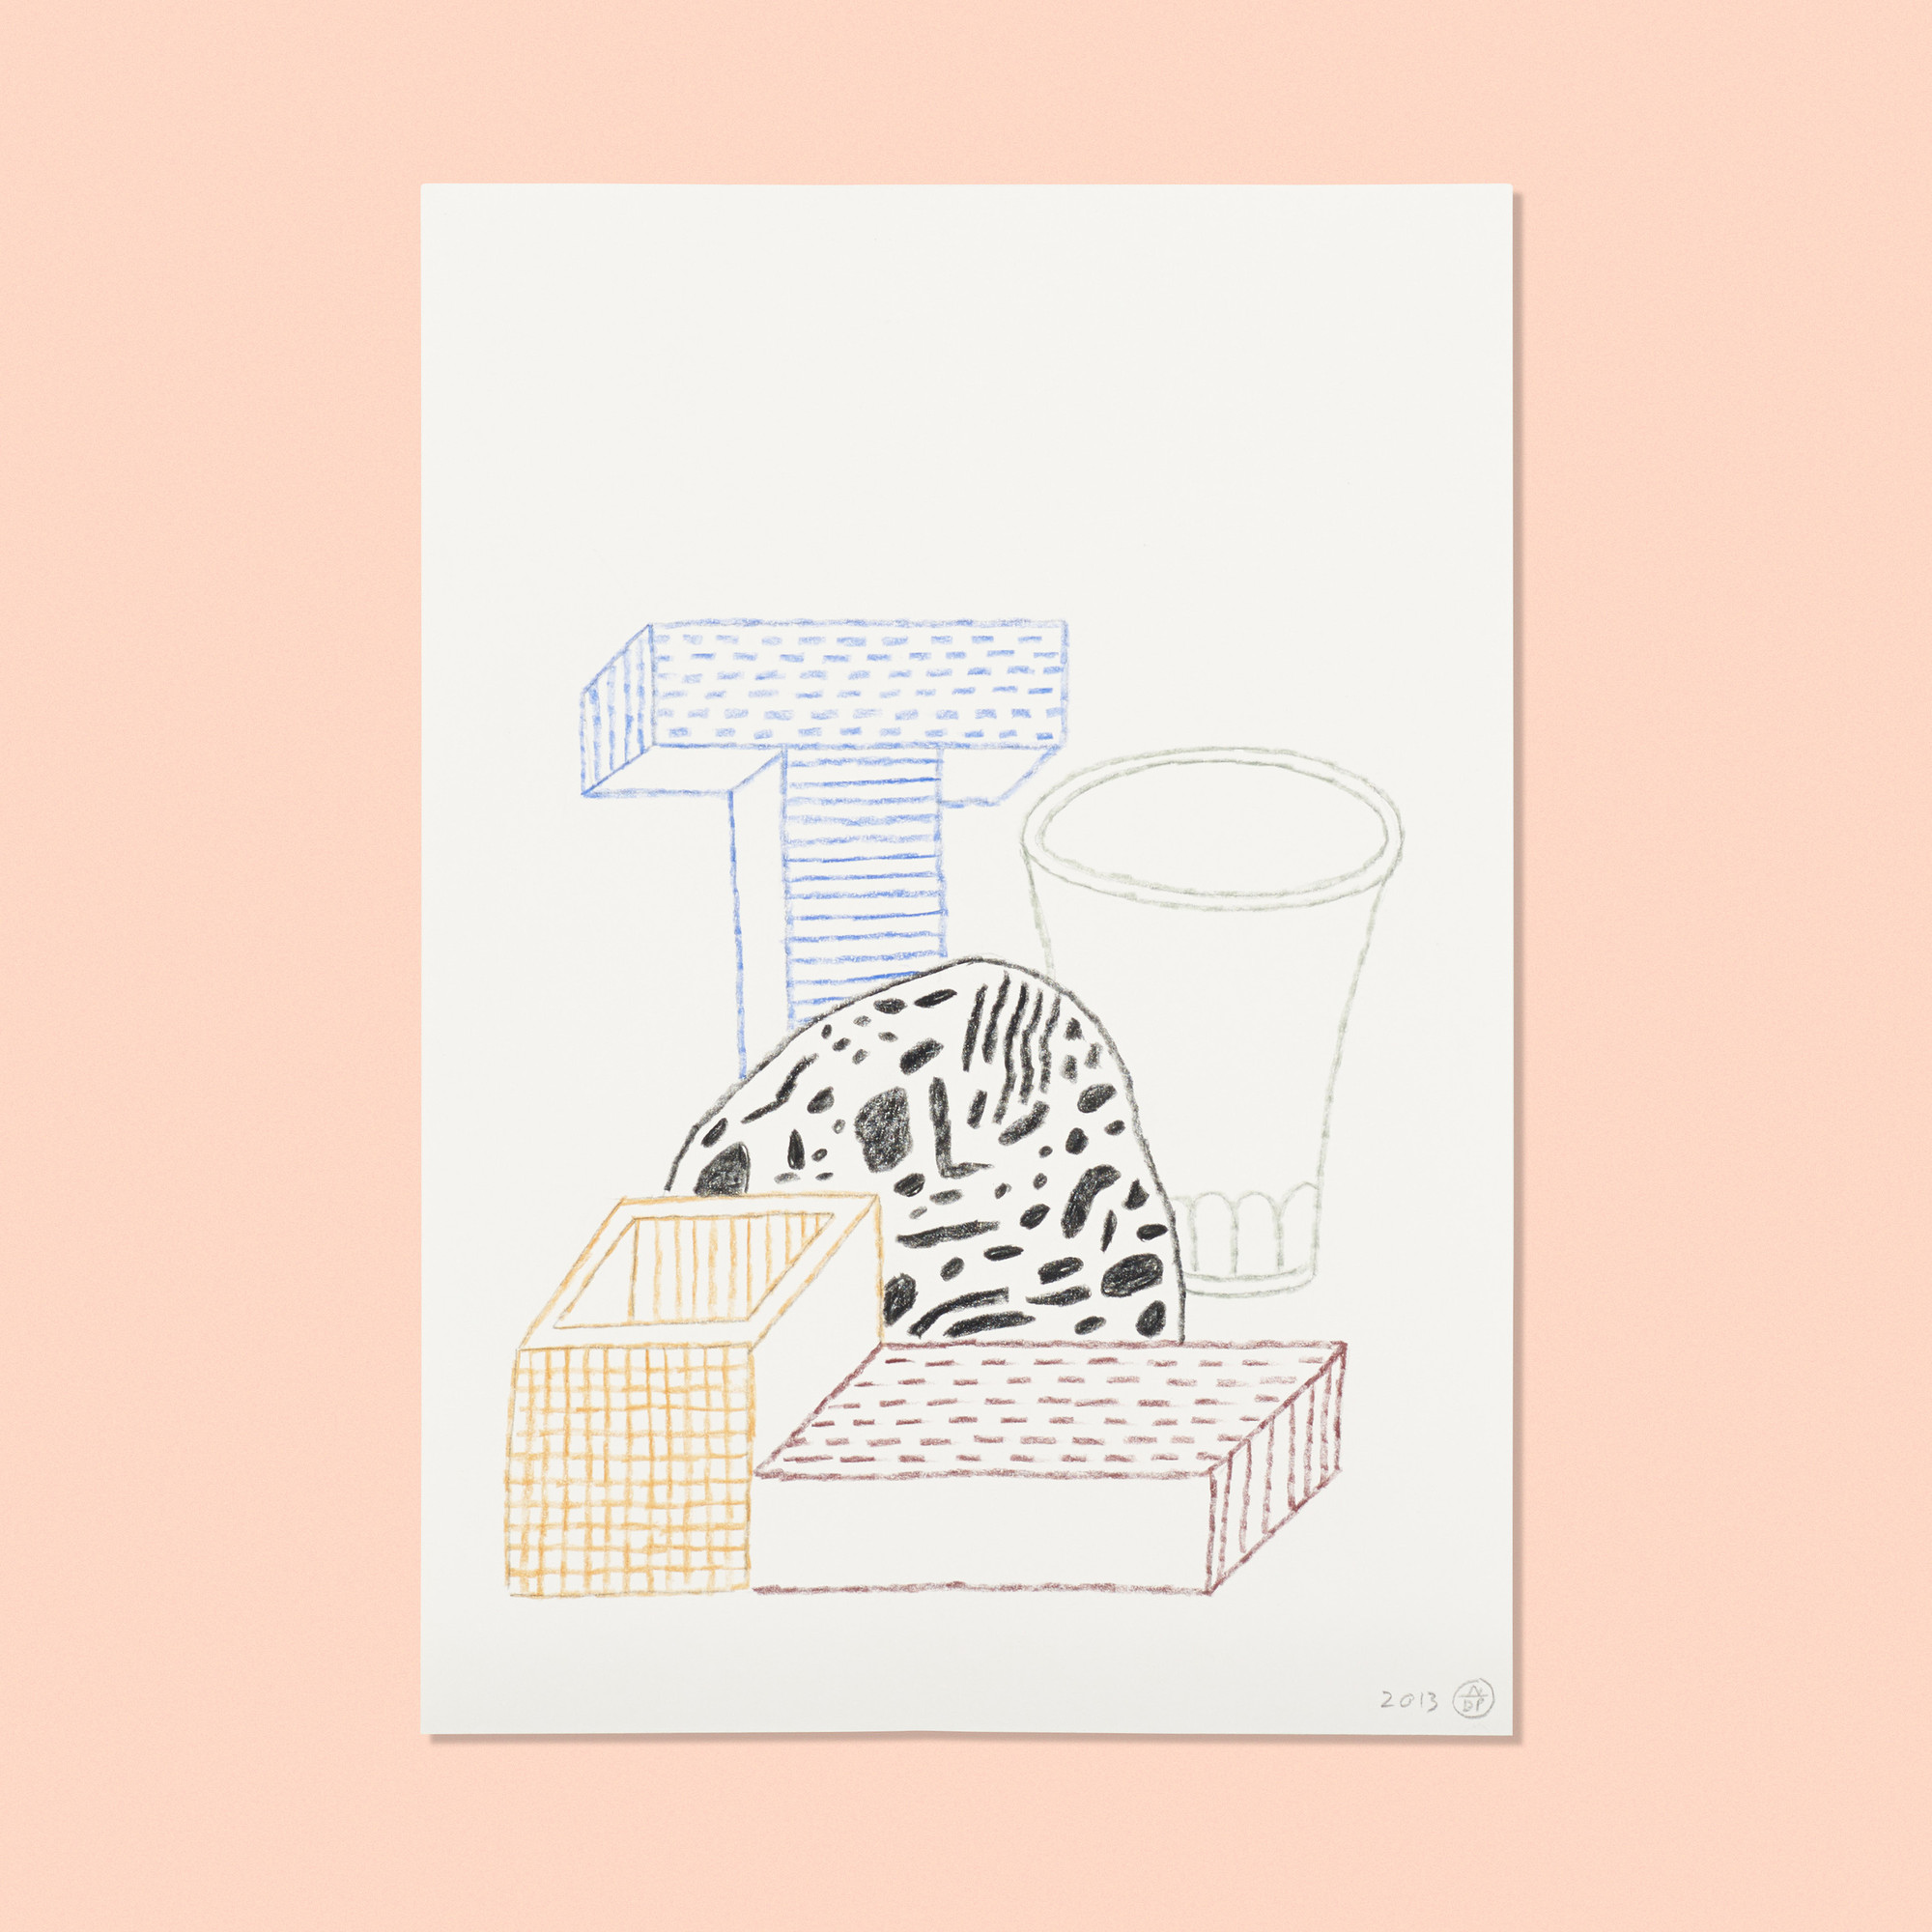 109_1_lawrence_laske_design_studio_and_collected_works_october_2014_nathalie_du_pasquier_untitled__wright_auction